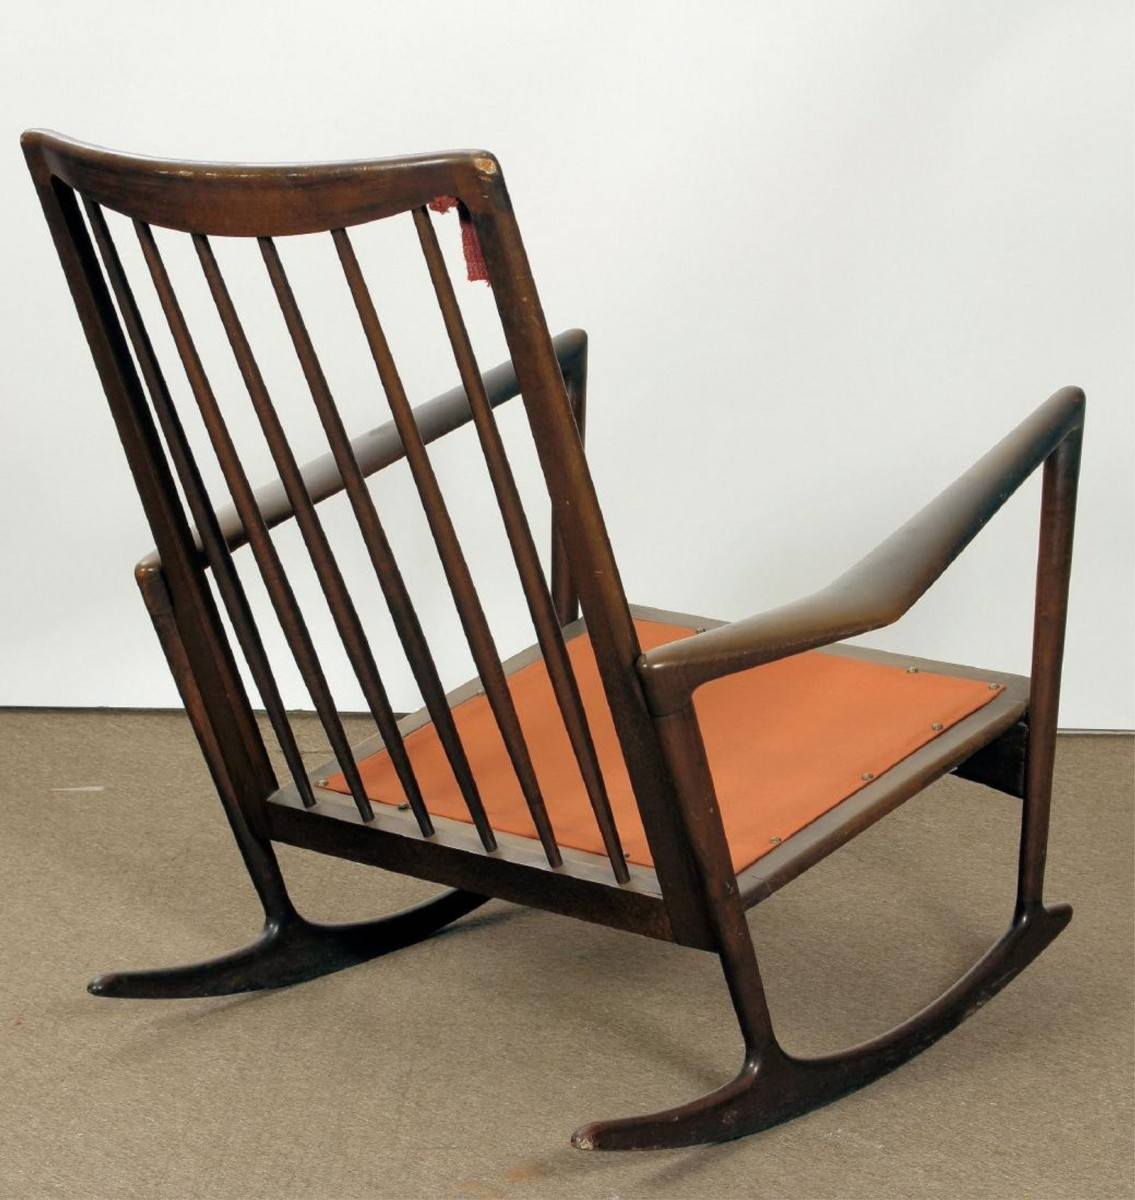 Selig Chair Ib Kofod Larsen Rocking Chair For Selig General Discussion